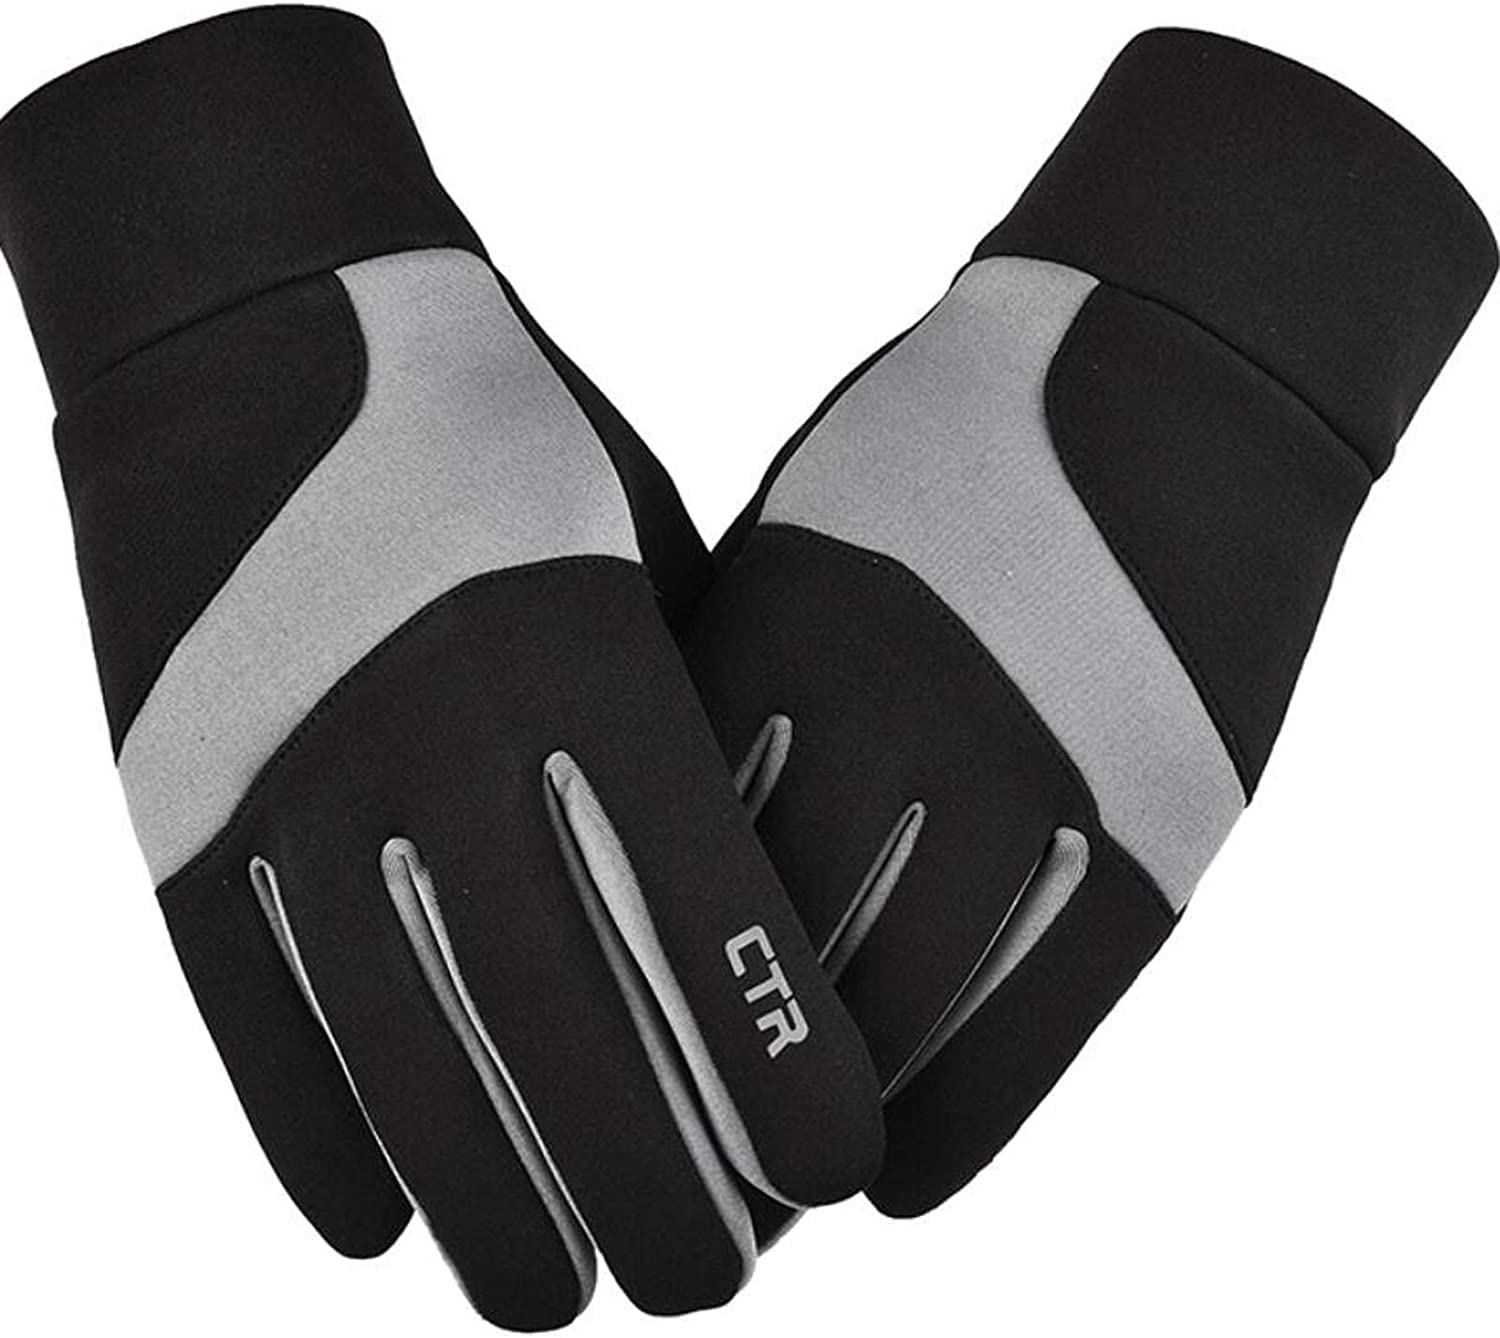 Winter Outdoor Waterproof and Warm Touch Screen Gloves, Men's and Women's Cycling Gloves, Shock Absorption, Anti-skid, Windproof and Warm Fitness Outdoor Gloves.